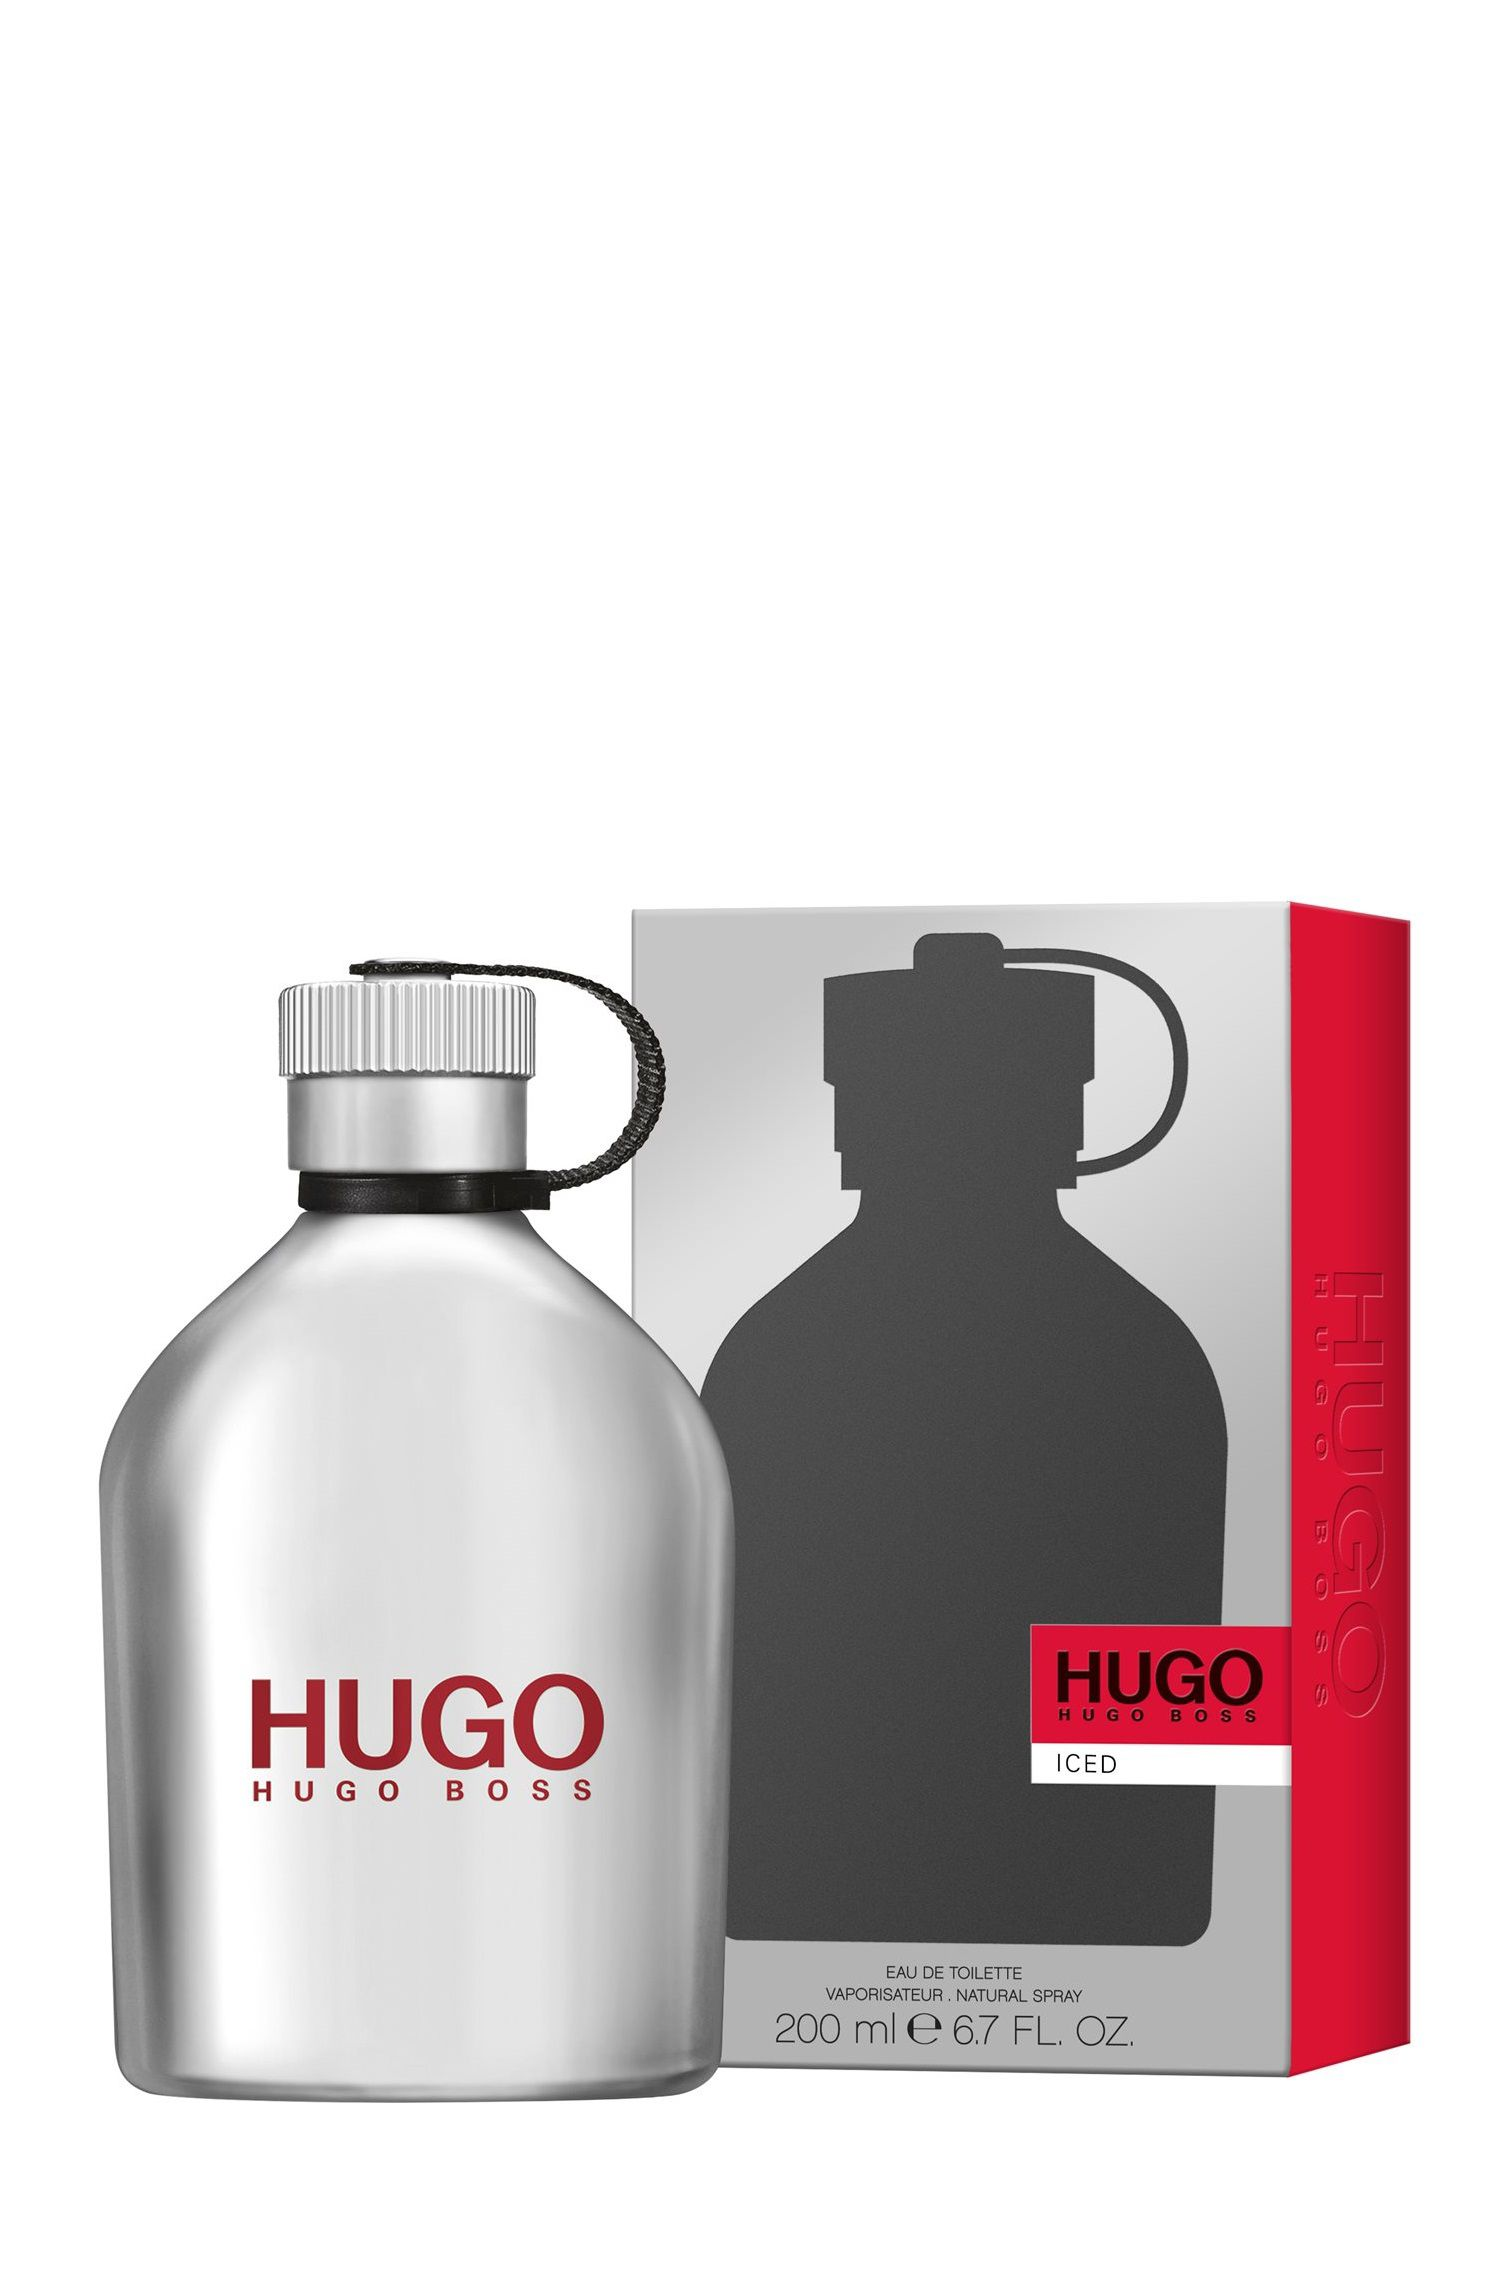 Eau de toilette HUGO Iced da 200 ml, Assorted-Pre-Pack